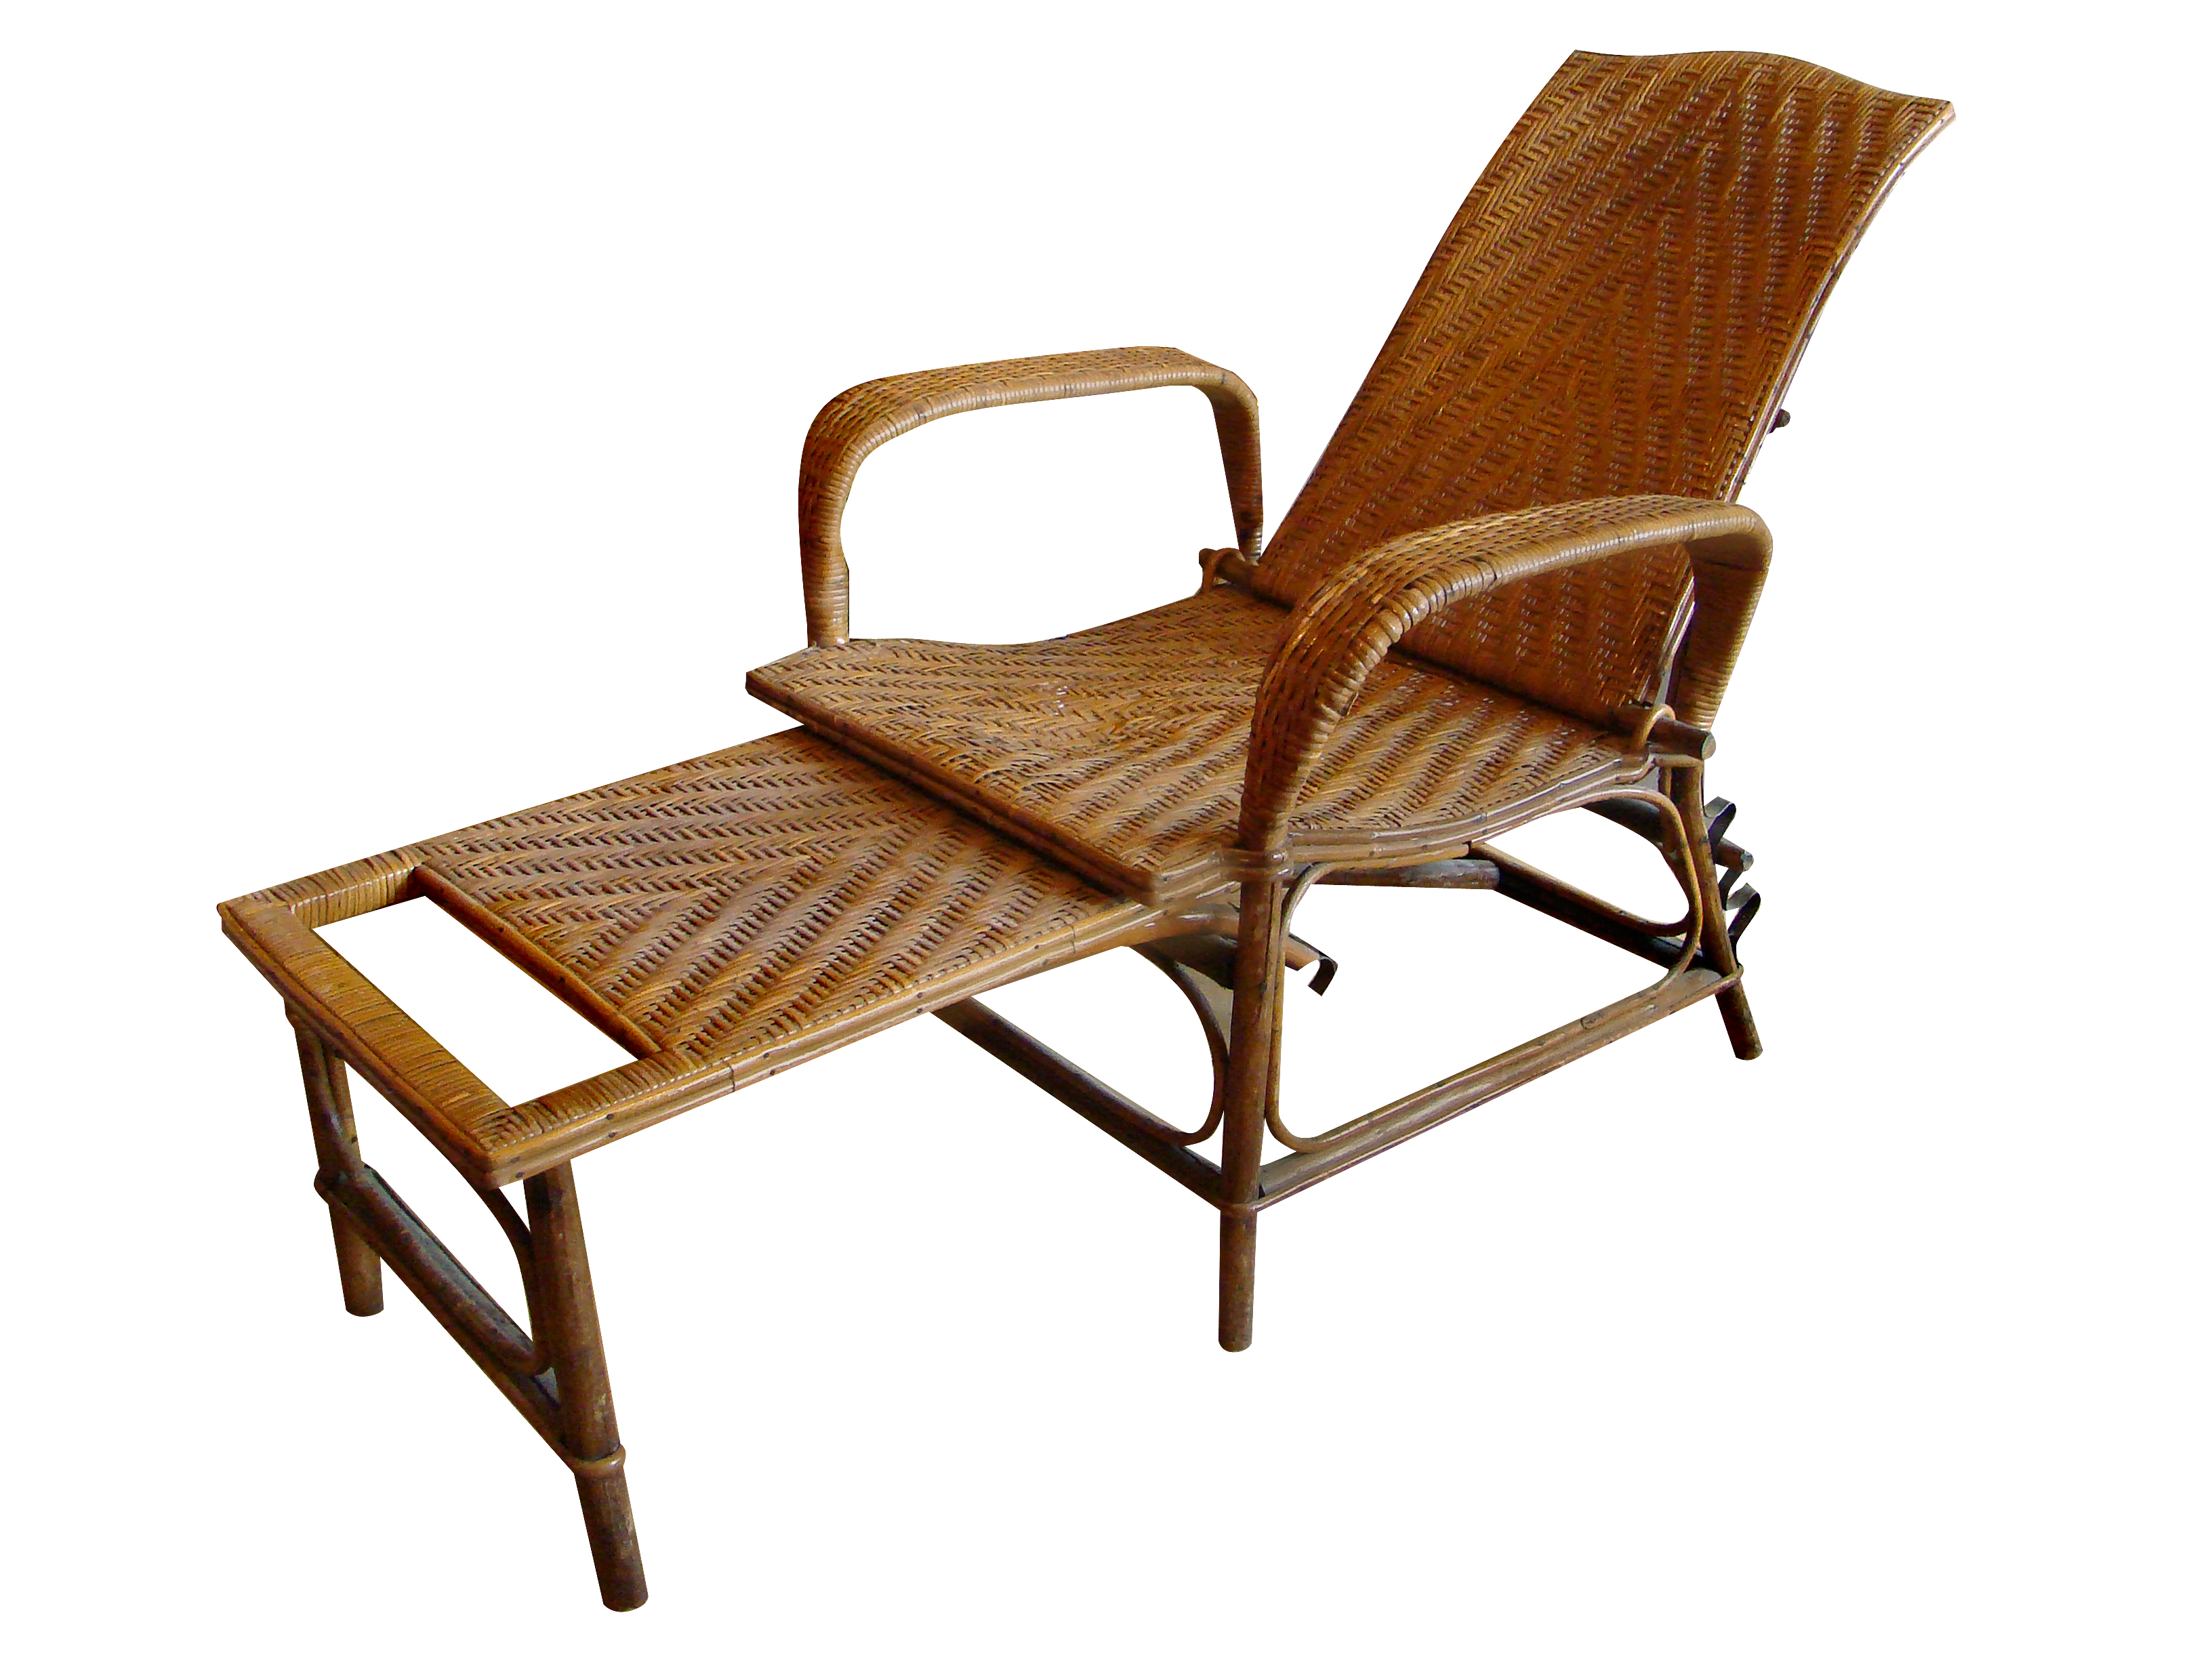 Vintage rattan and bamboo chaise lounge le barn antiques for Antique chaise lounge furniture